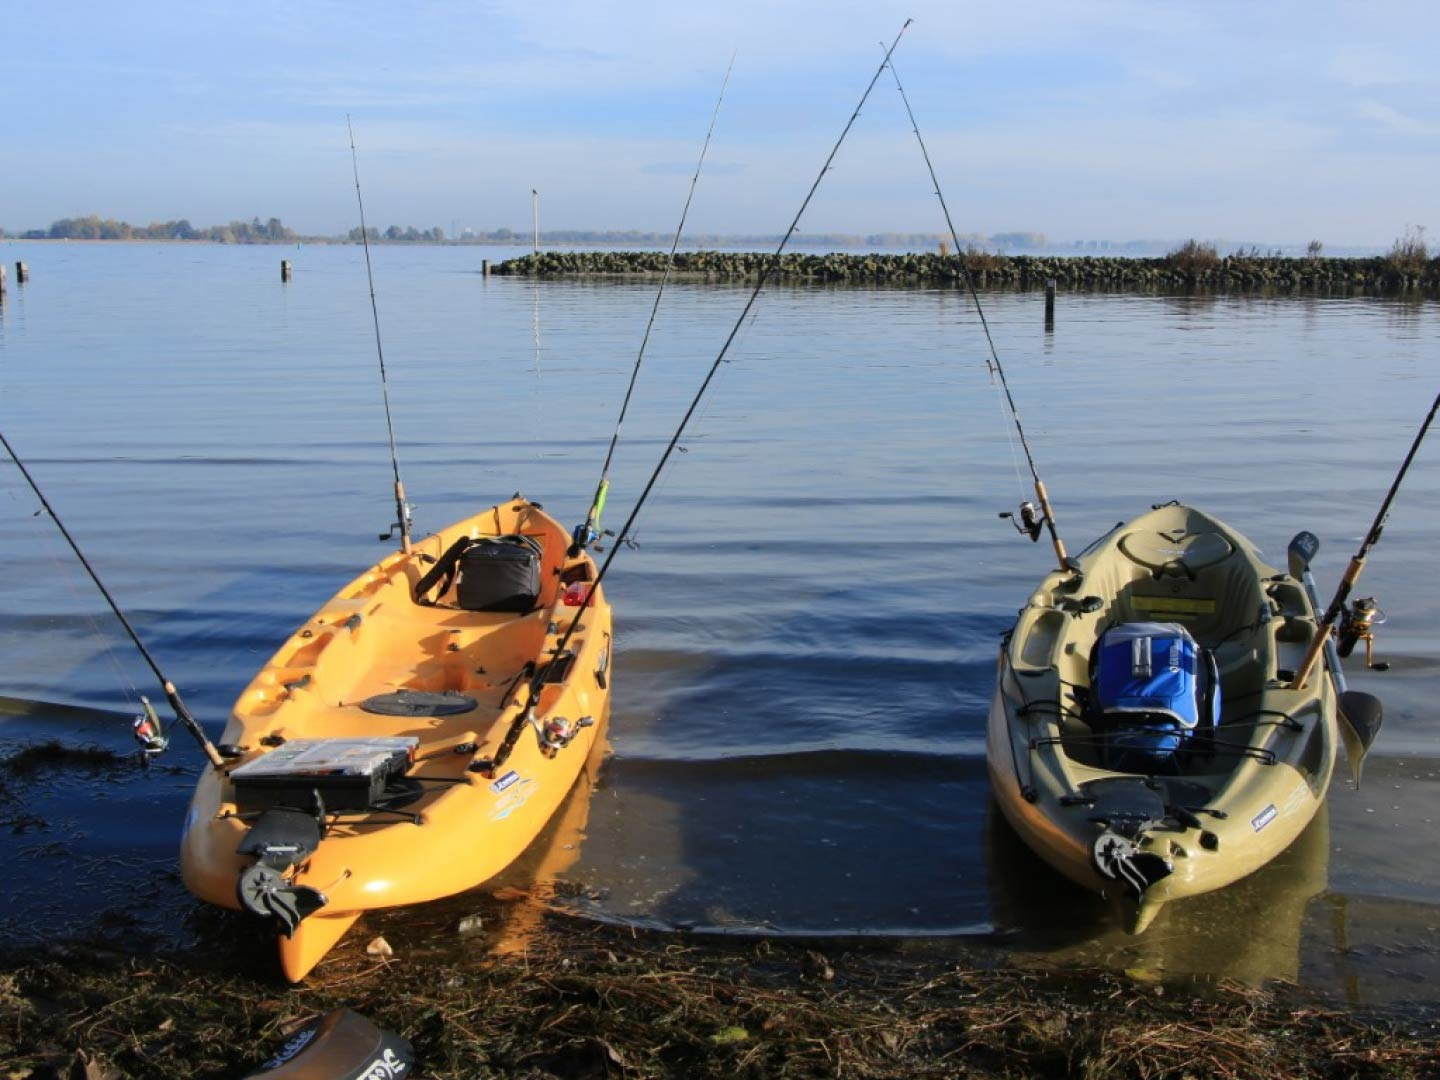 Two fishing kayaks on the waters of the Netherlands